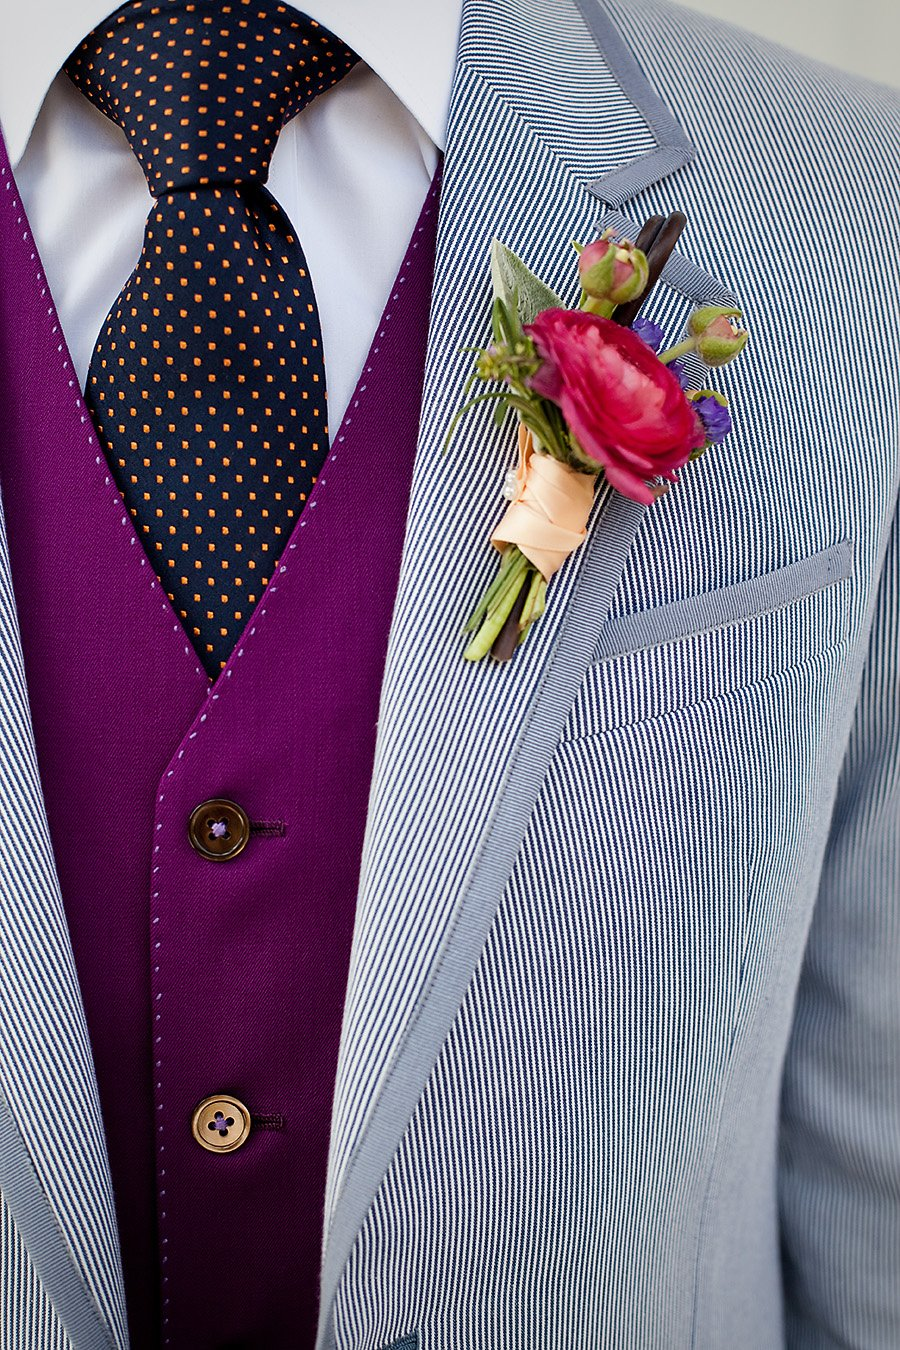 How To Find The Best Spring Wedding Suit - Textures and patterns | CHWV